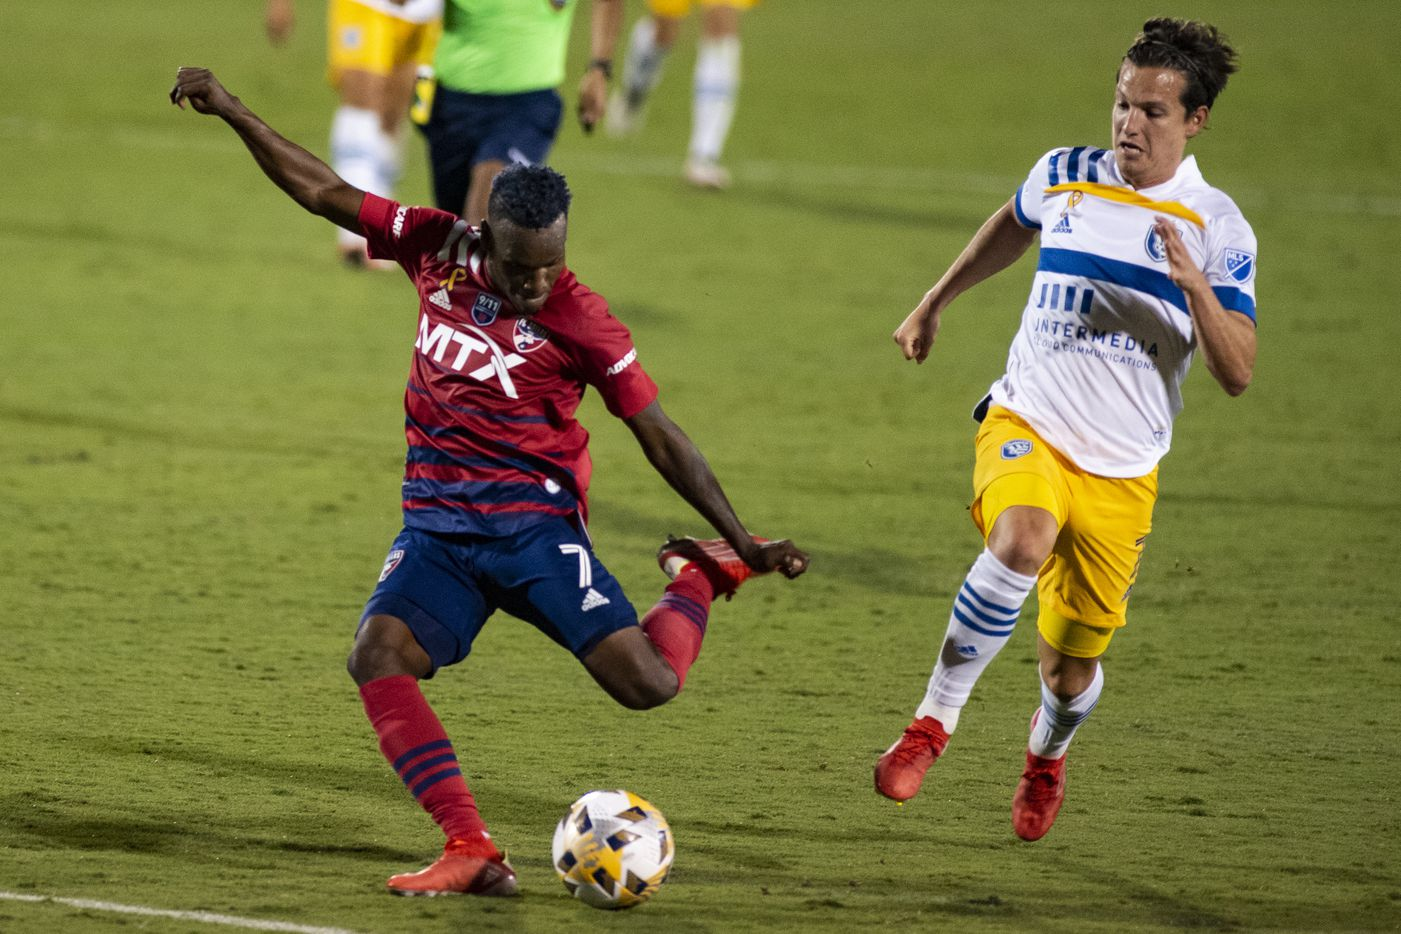 FC Dallas forward Jader Obrian (7) prepares to kick the ball during FC DallasÕ home game against the San Jose Earthquakes at Toyota Stadium in Frisco, Texas on Saturday, September 11, 2021. (Emil Lippe/Special Contributor)